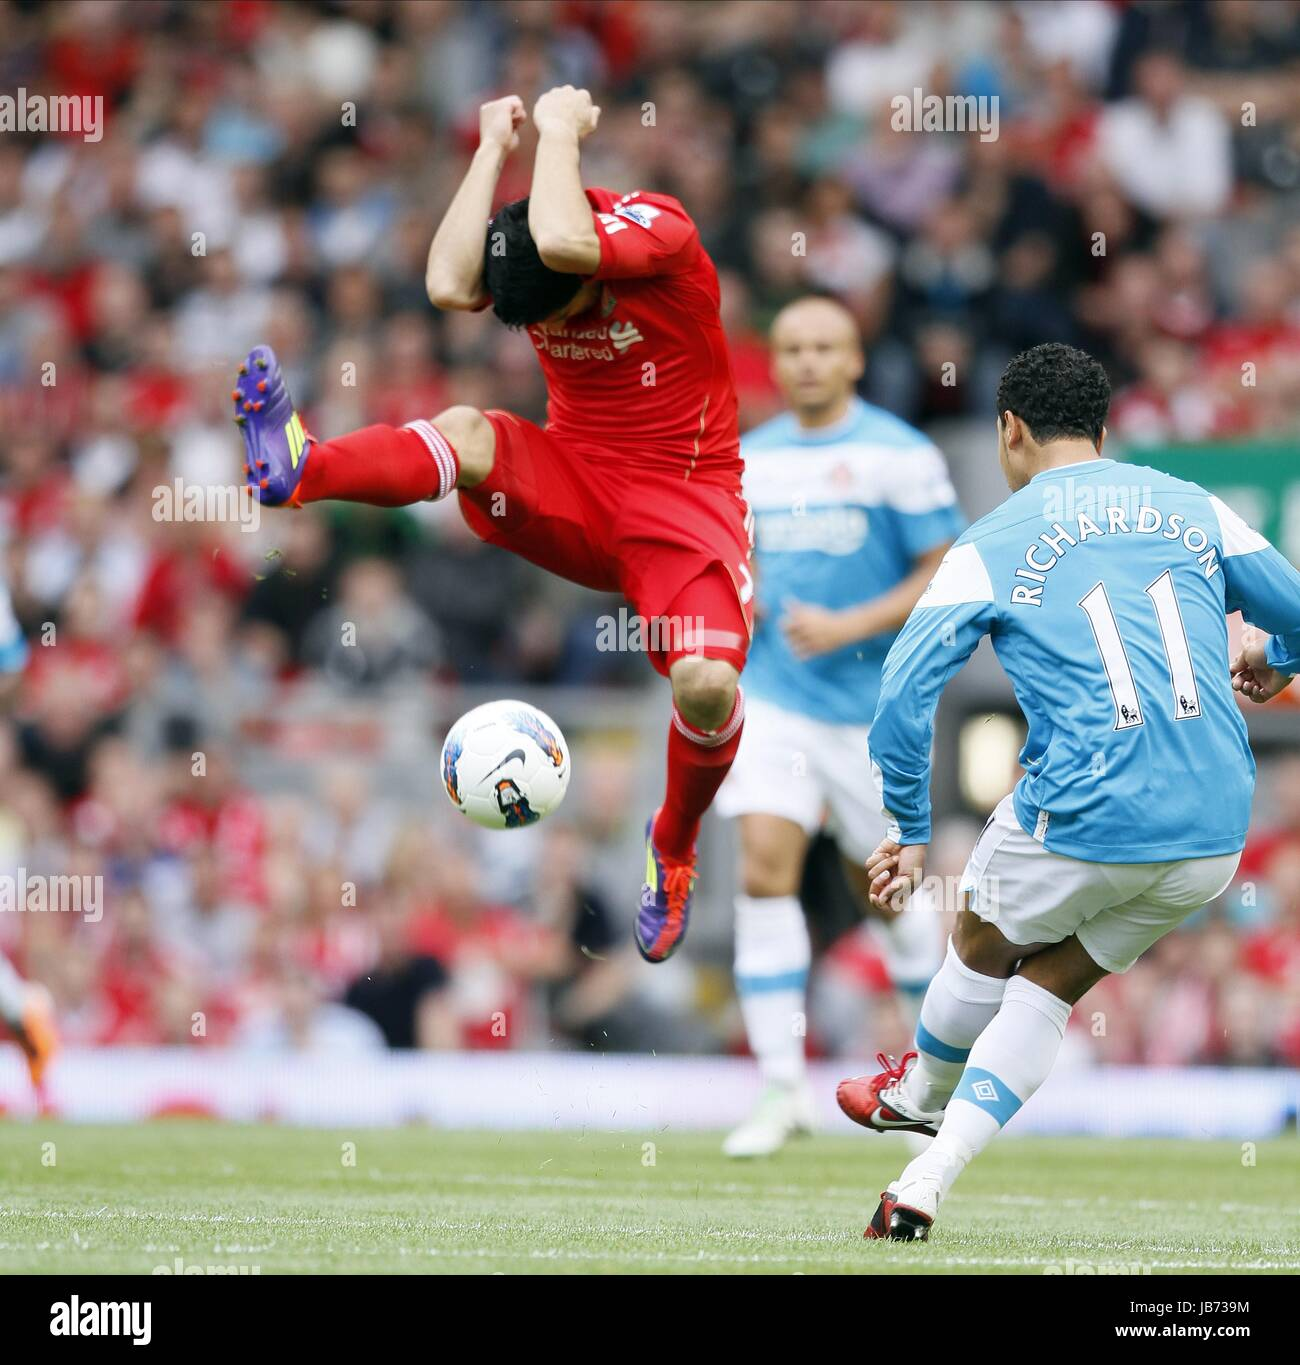 LUIS SUAREZ CHARGES DOWN KIERA LIVERPOOL V SUNDERLAND FC ANFIELD LIVERPOOL ENGLAND 13 August 2011 - Stock Image